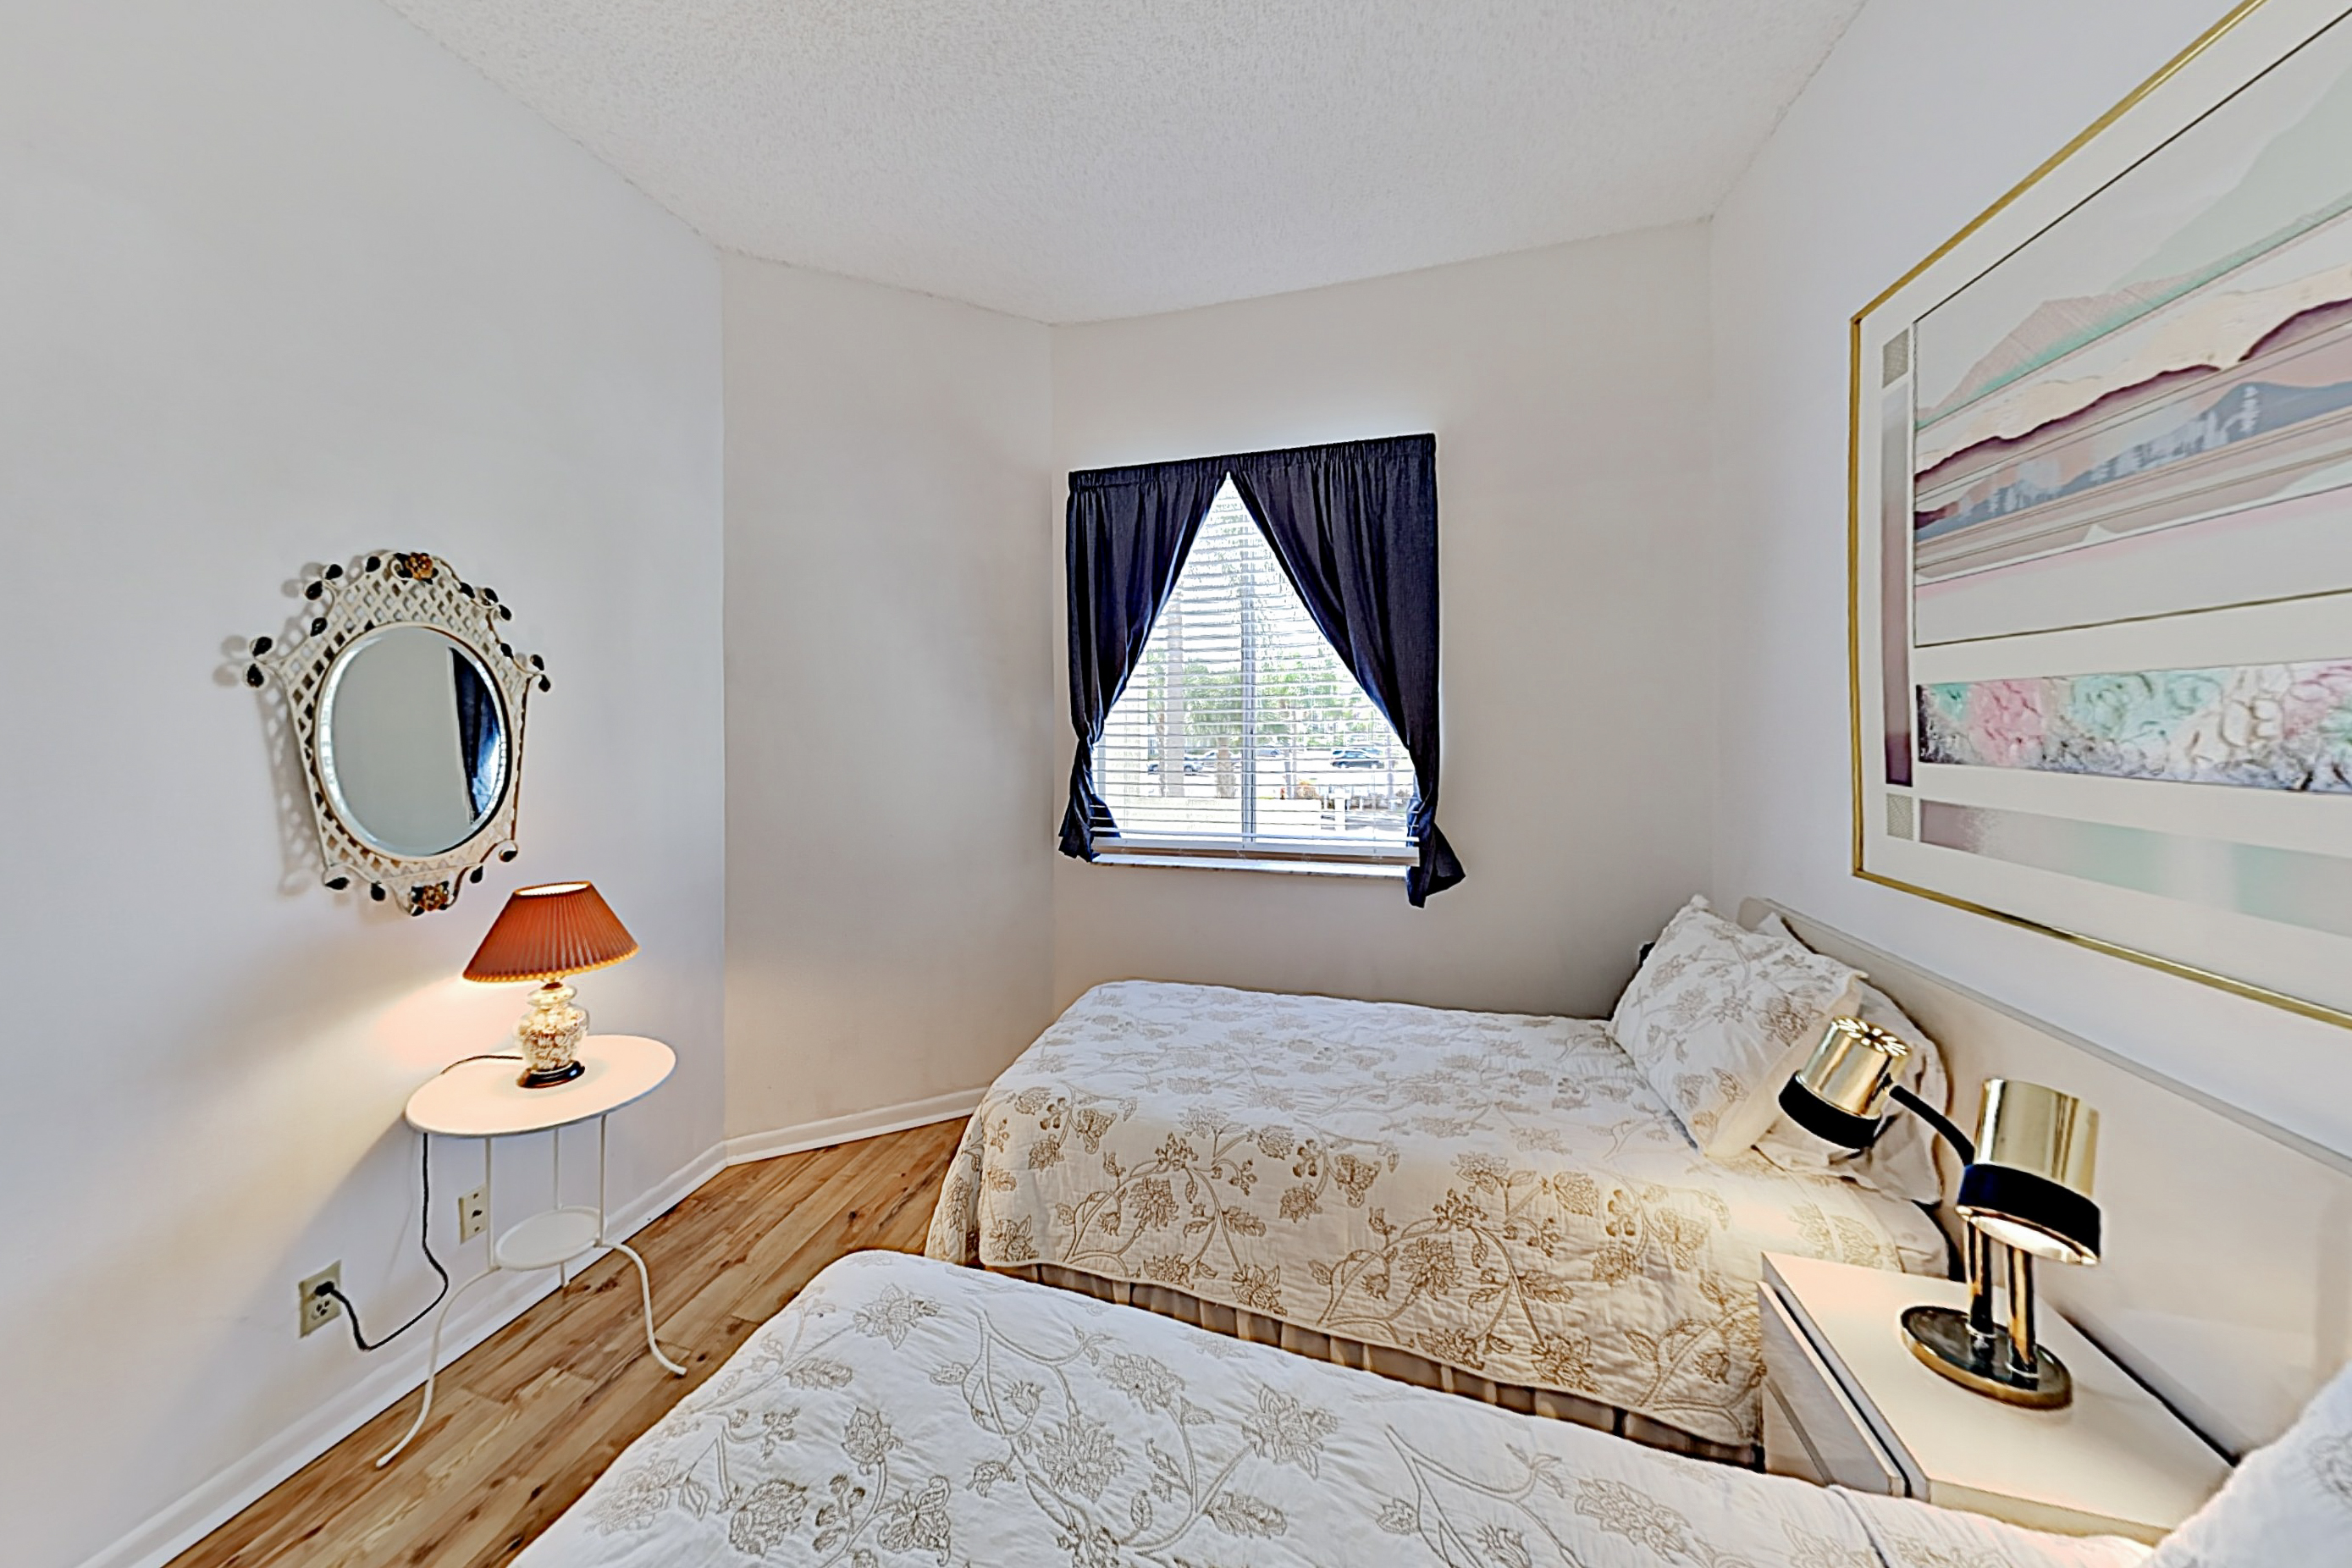 Property Images